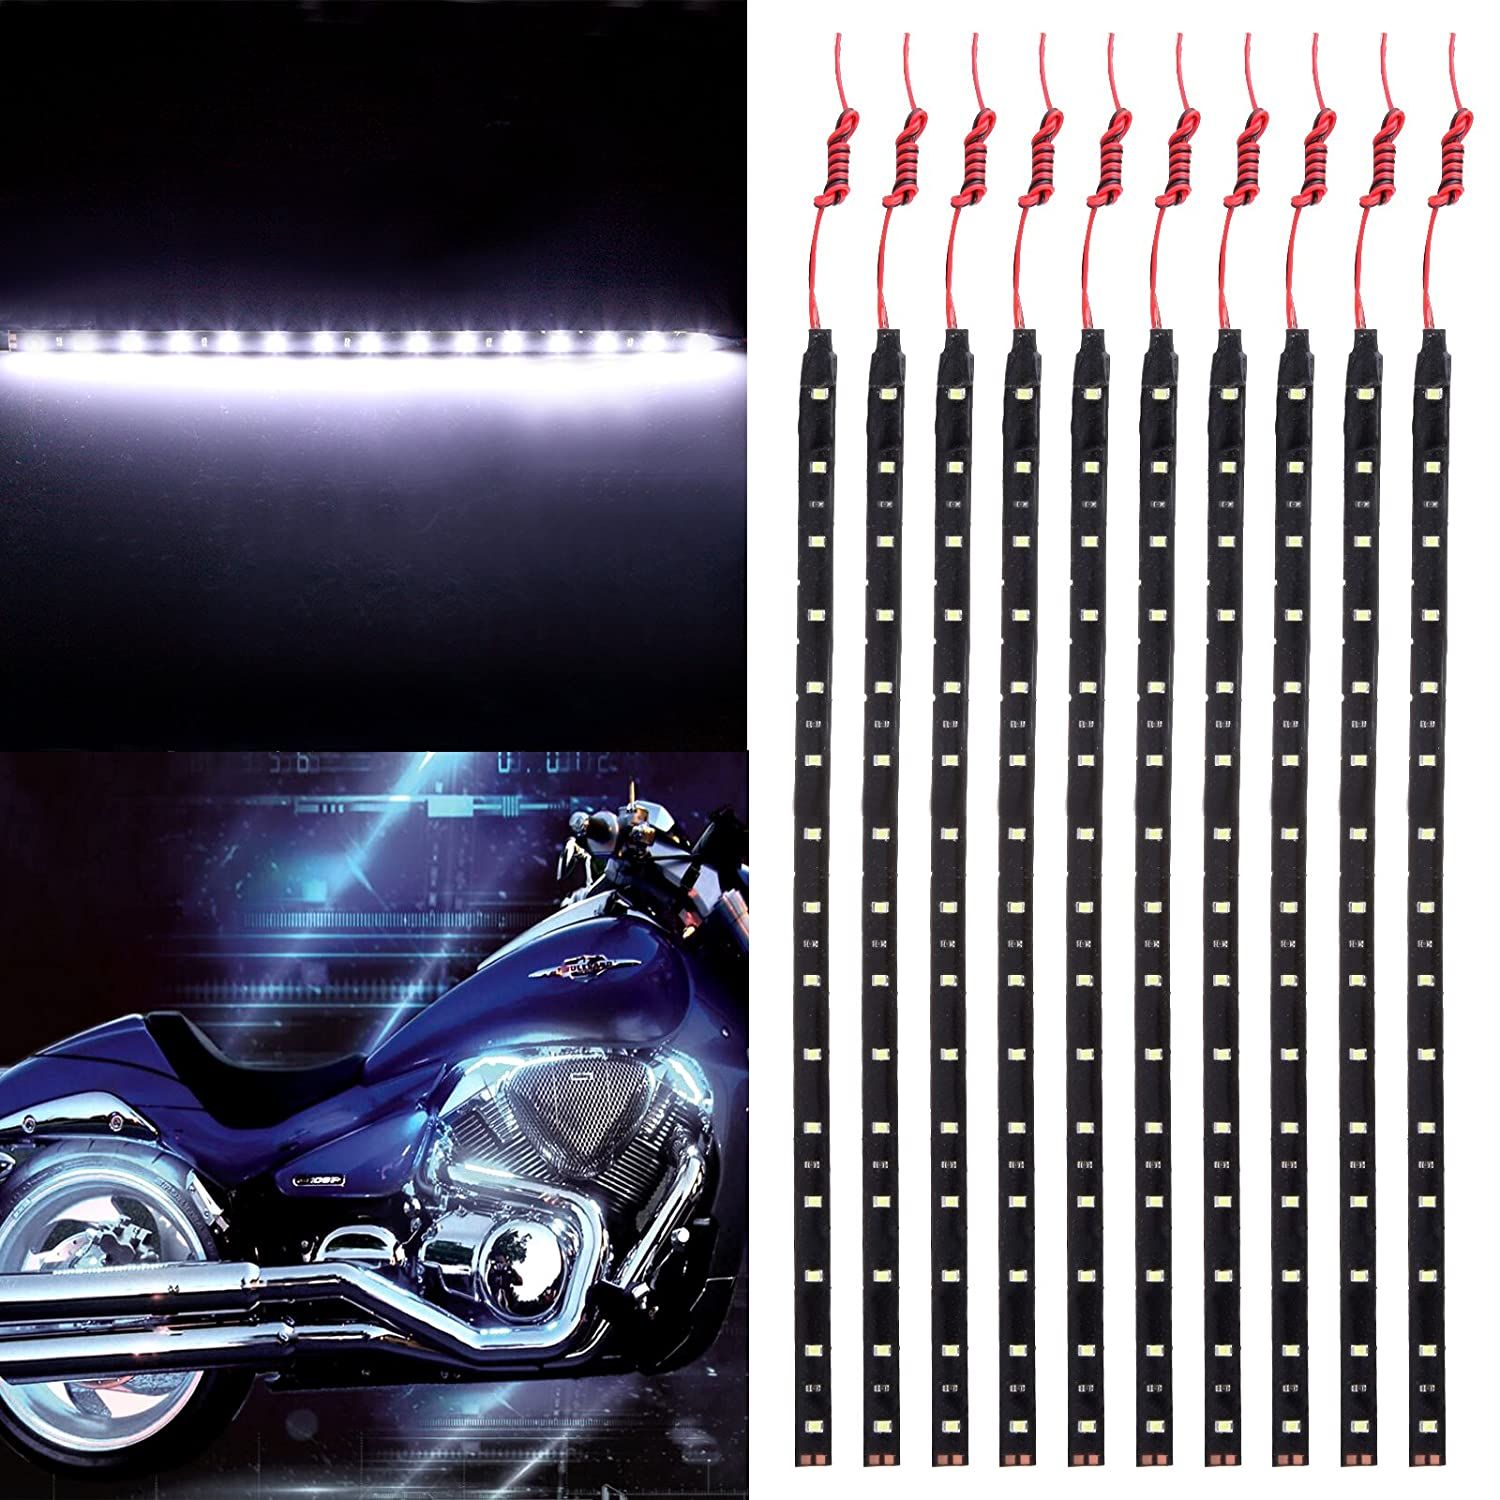 RGB 30CM 15-SMD White Accent Glow Neon Lights Lamp Waterproof Turn Signal Light Replacement fit for Pickup SUV Jeeps RV Dodge Ram Toyota Chevy GMC,10 Pack 5559038145 OCPTY Motorcycle LED Strip Light